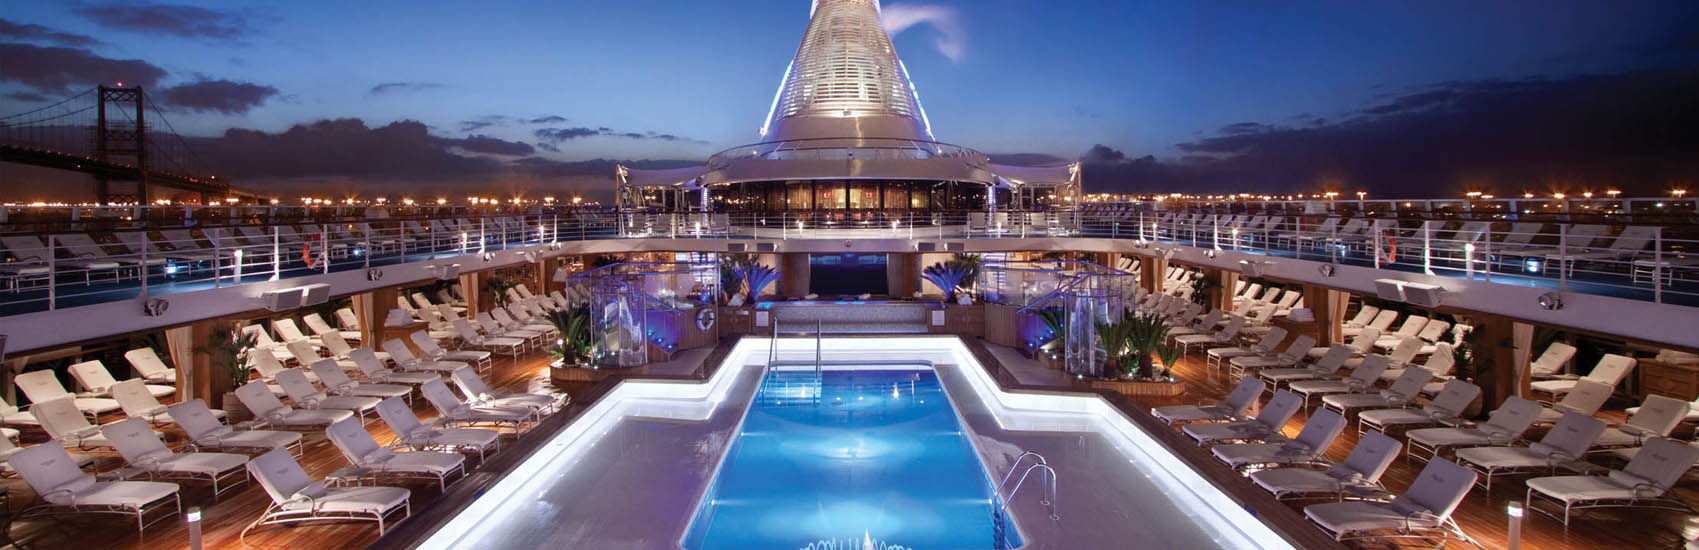 Enjoy roundtrip Airfare* and your choice of additional bonus amenities with Oceania Cruises! 2